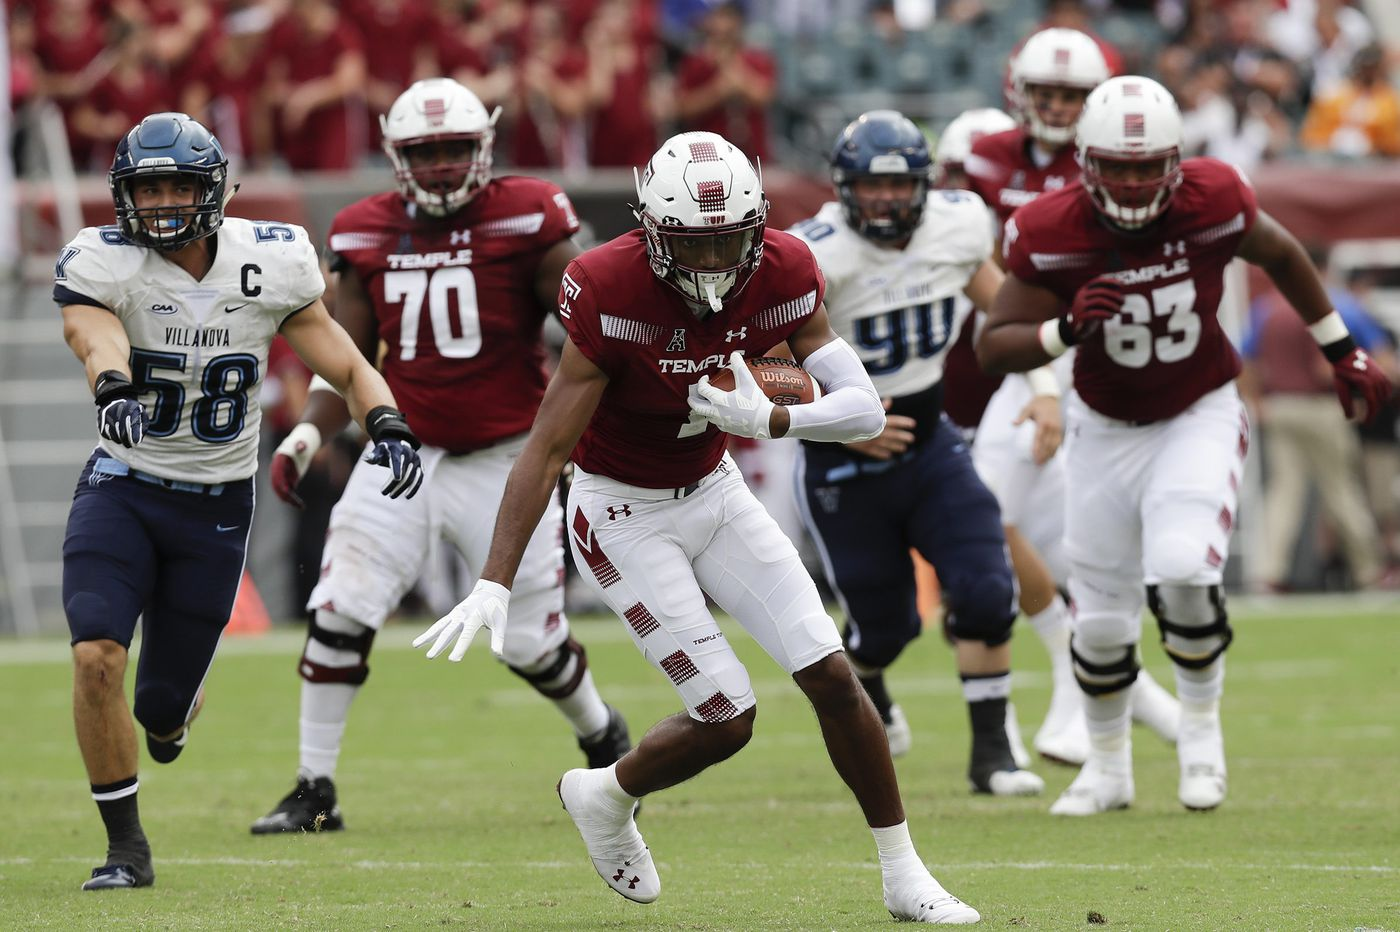 No, Temple hasn't forgotten that football loss to Villanova